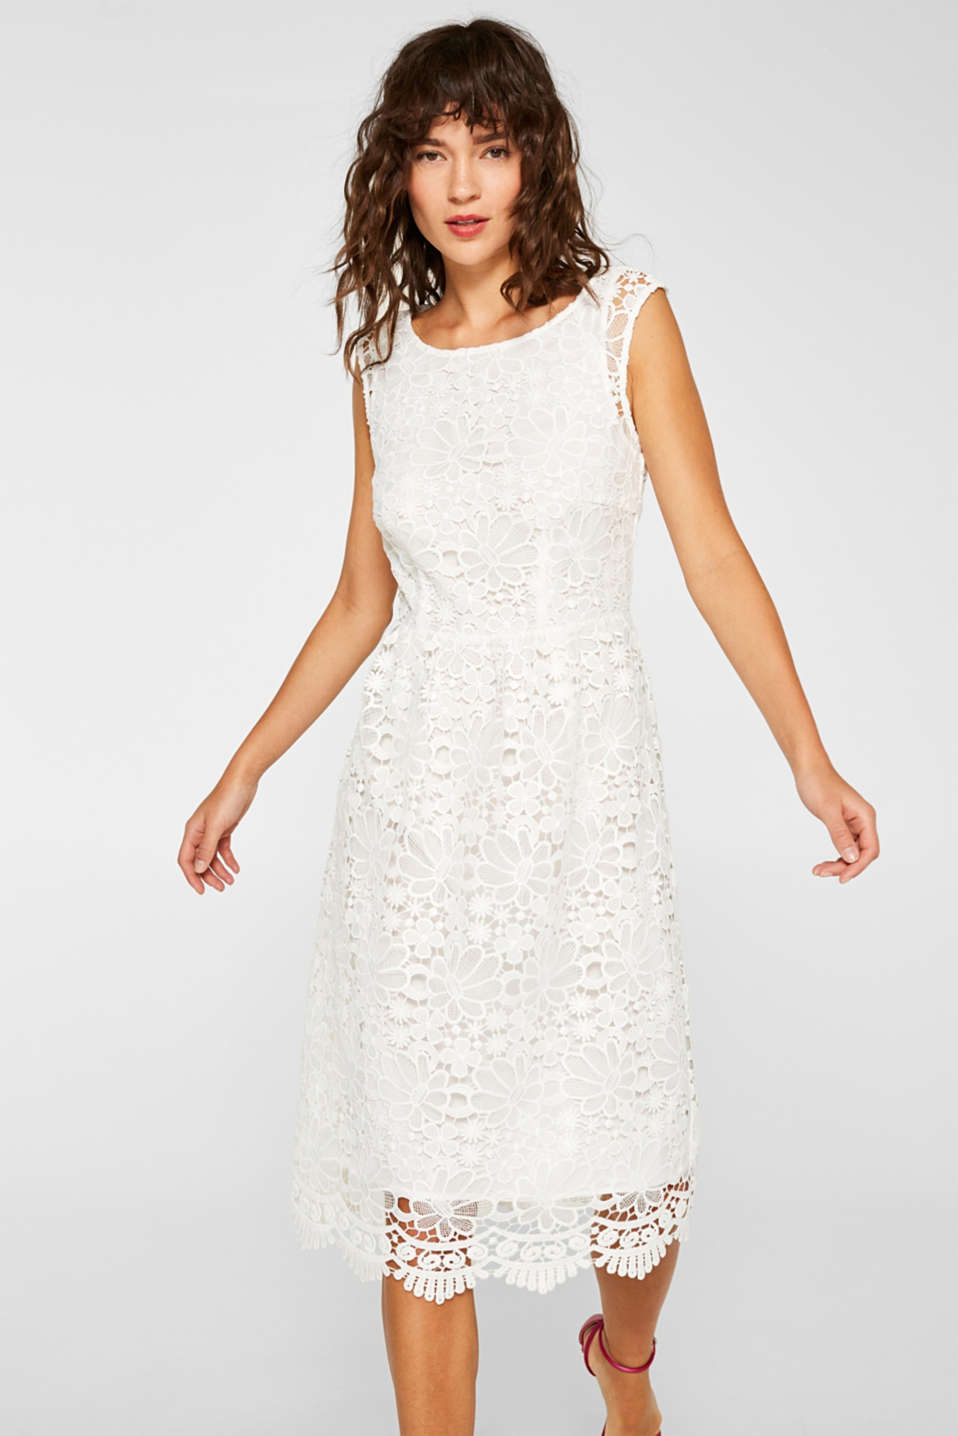 Esprit - Midi dress made of opulent lace